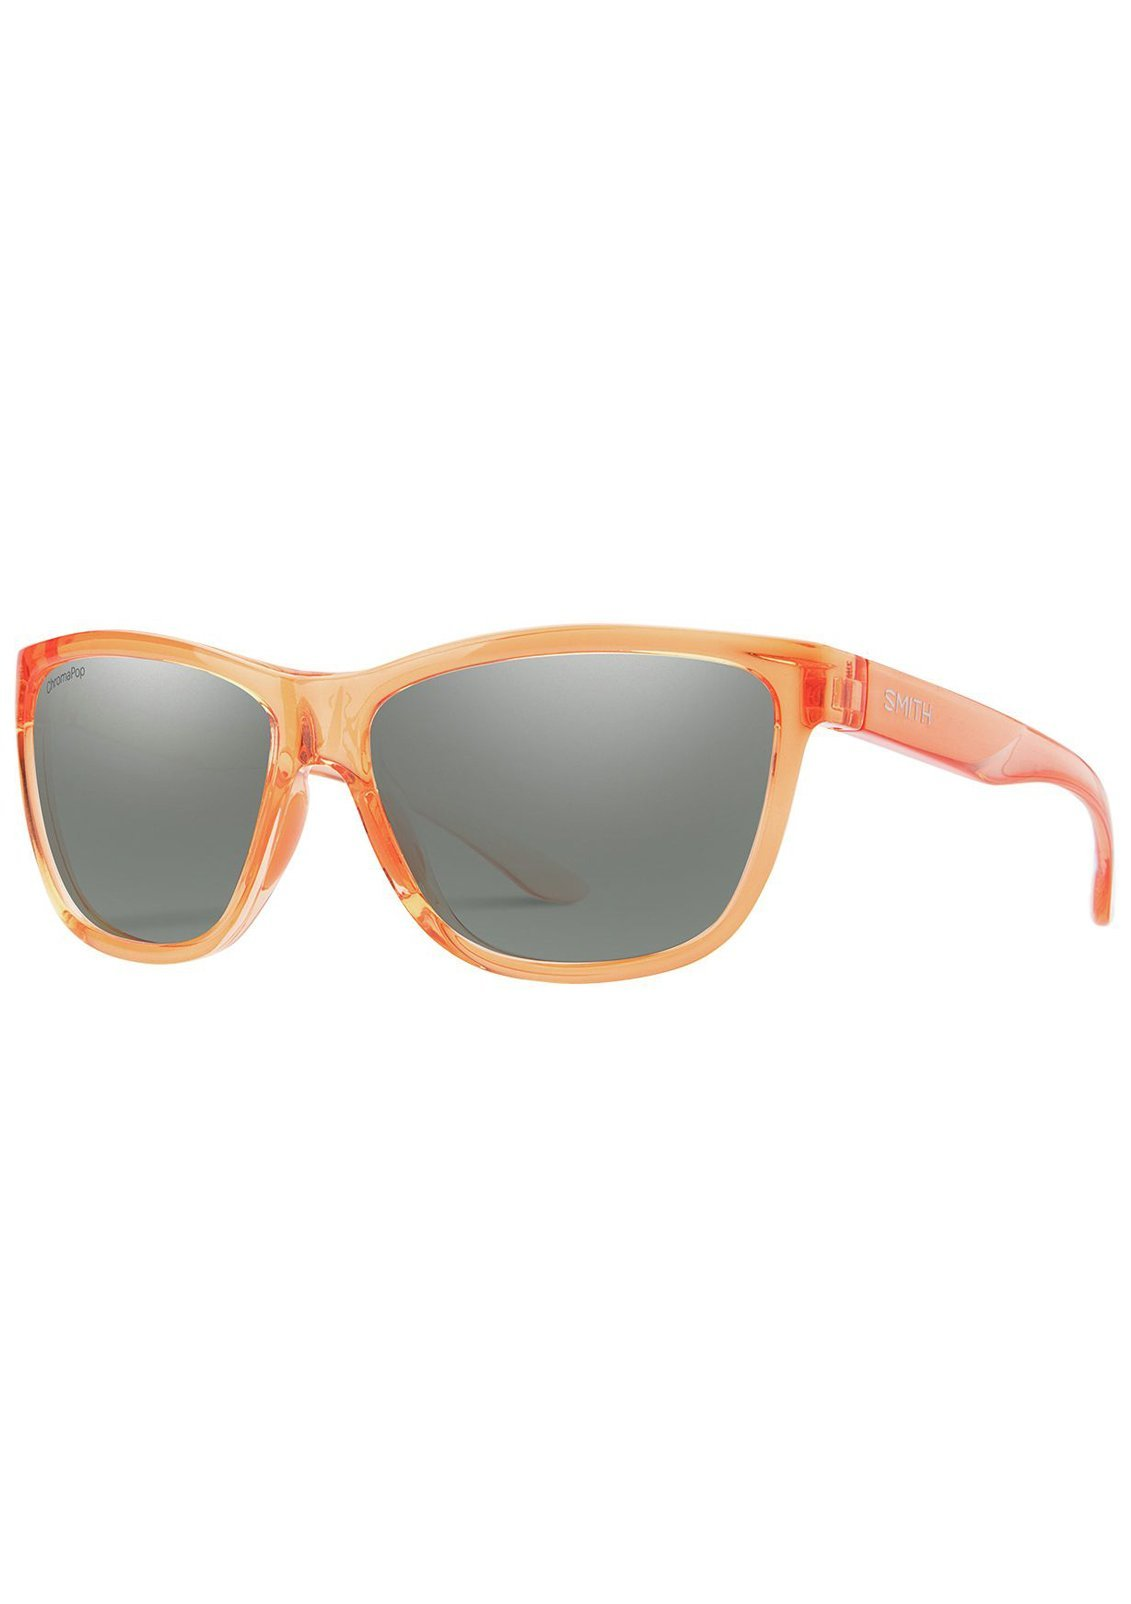 Women's Eclipse Polarized Sunglasses